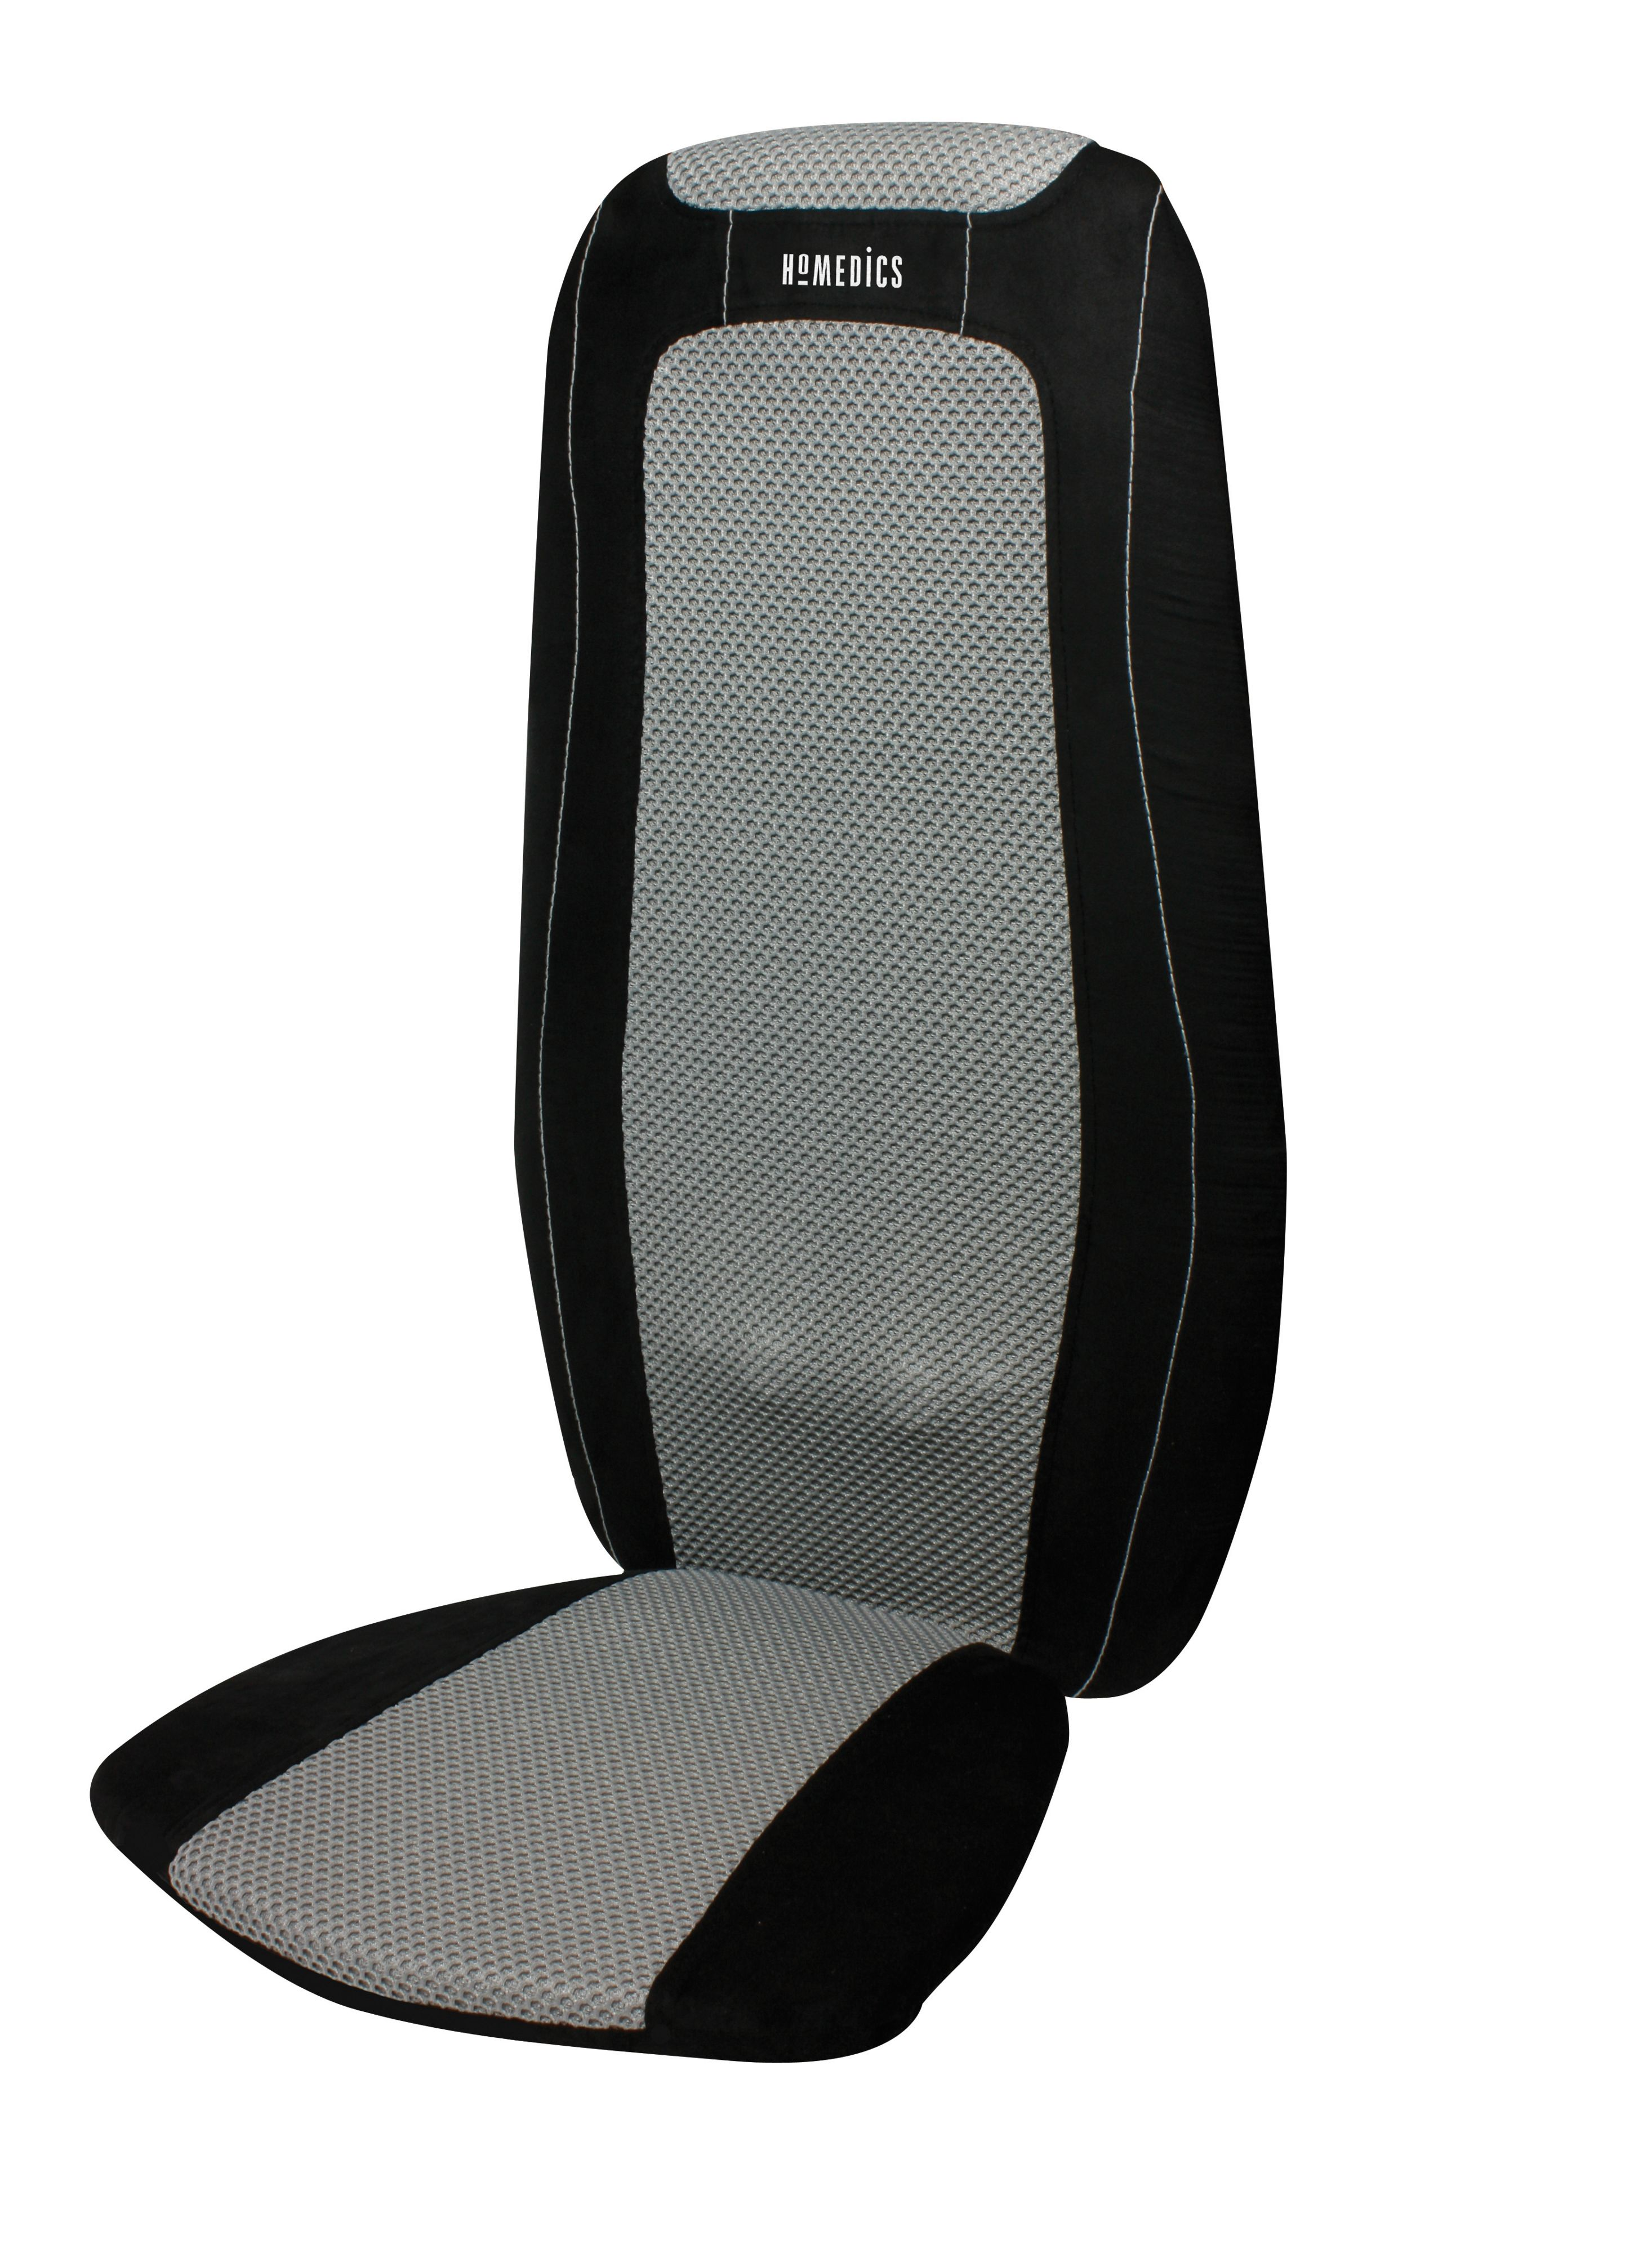 SBM-400HX-GB massage chair